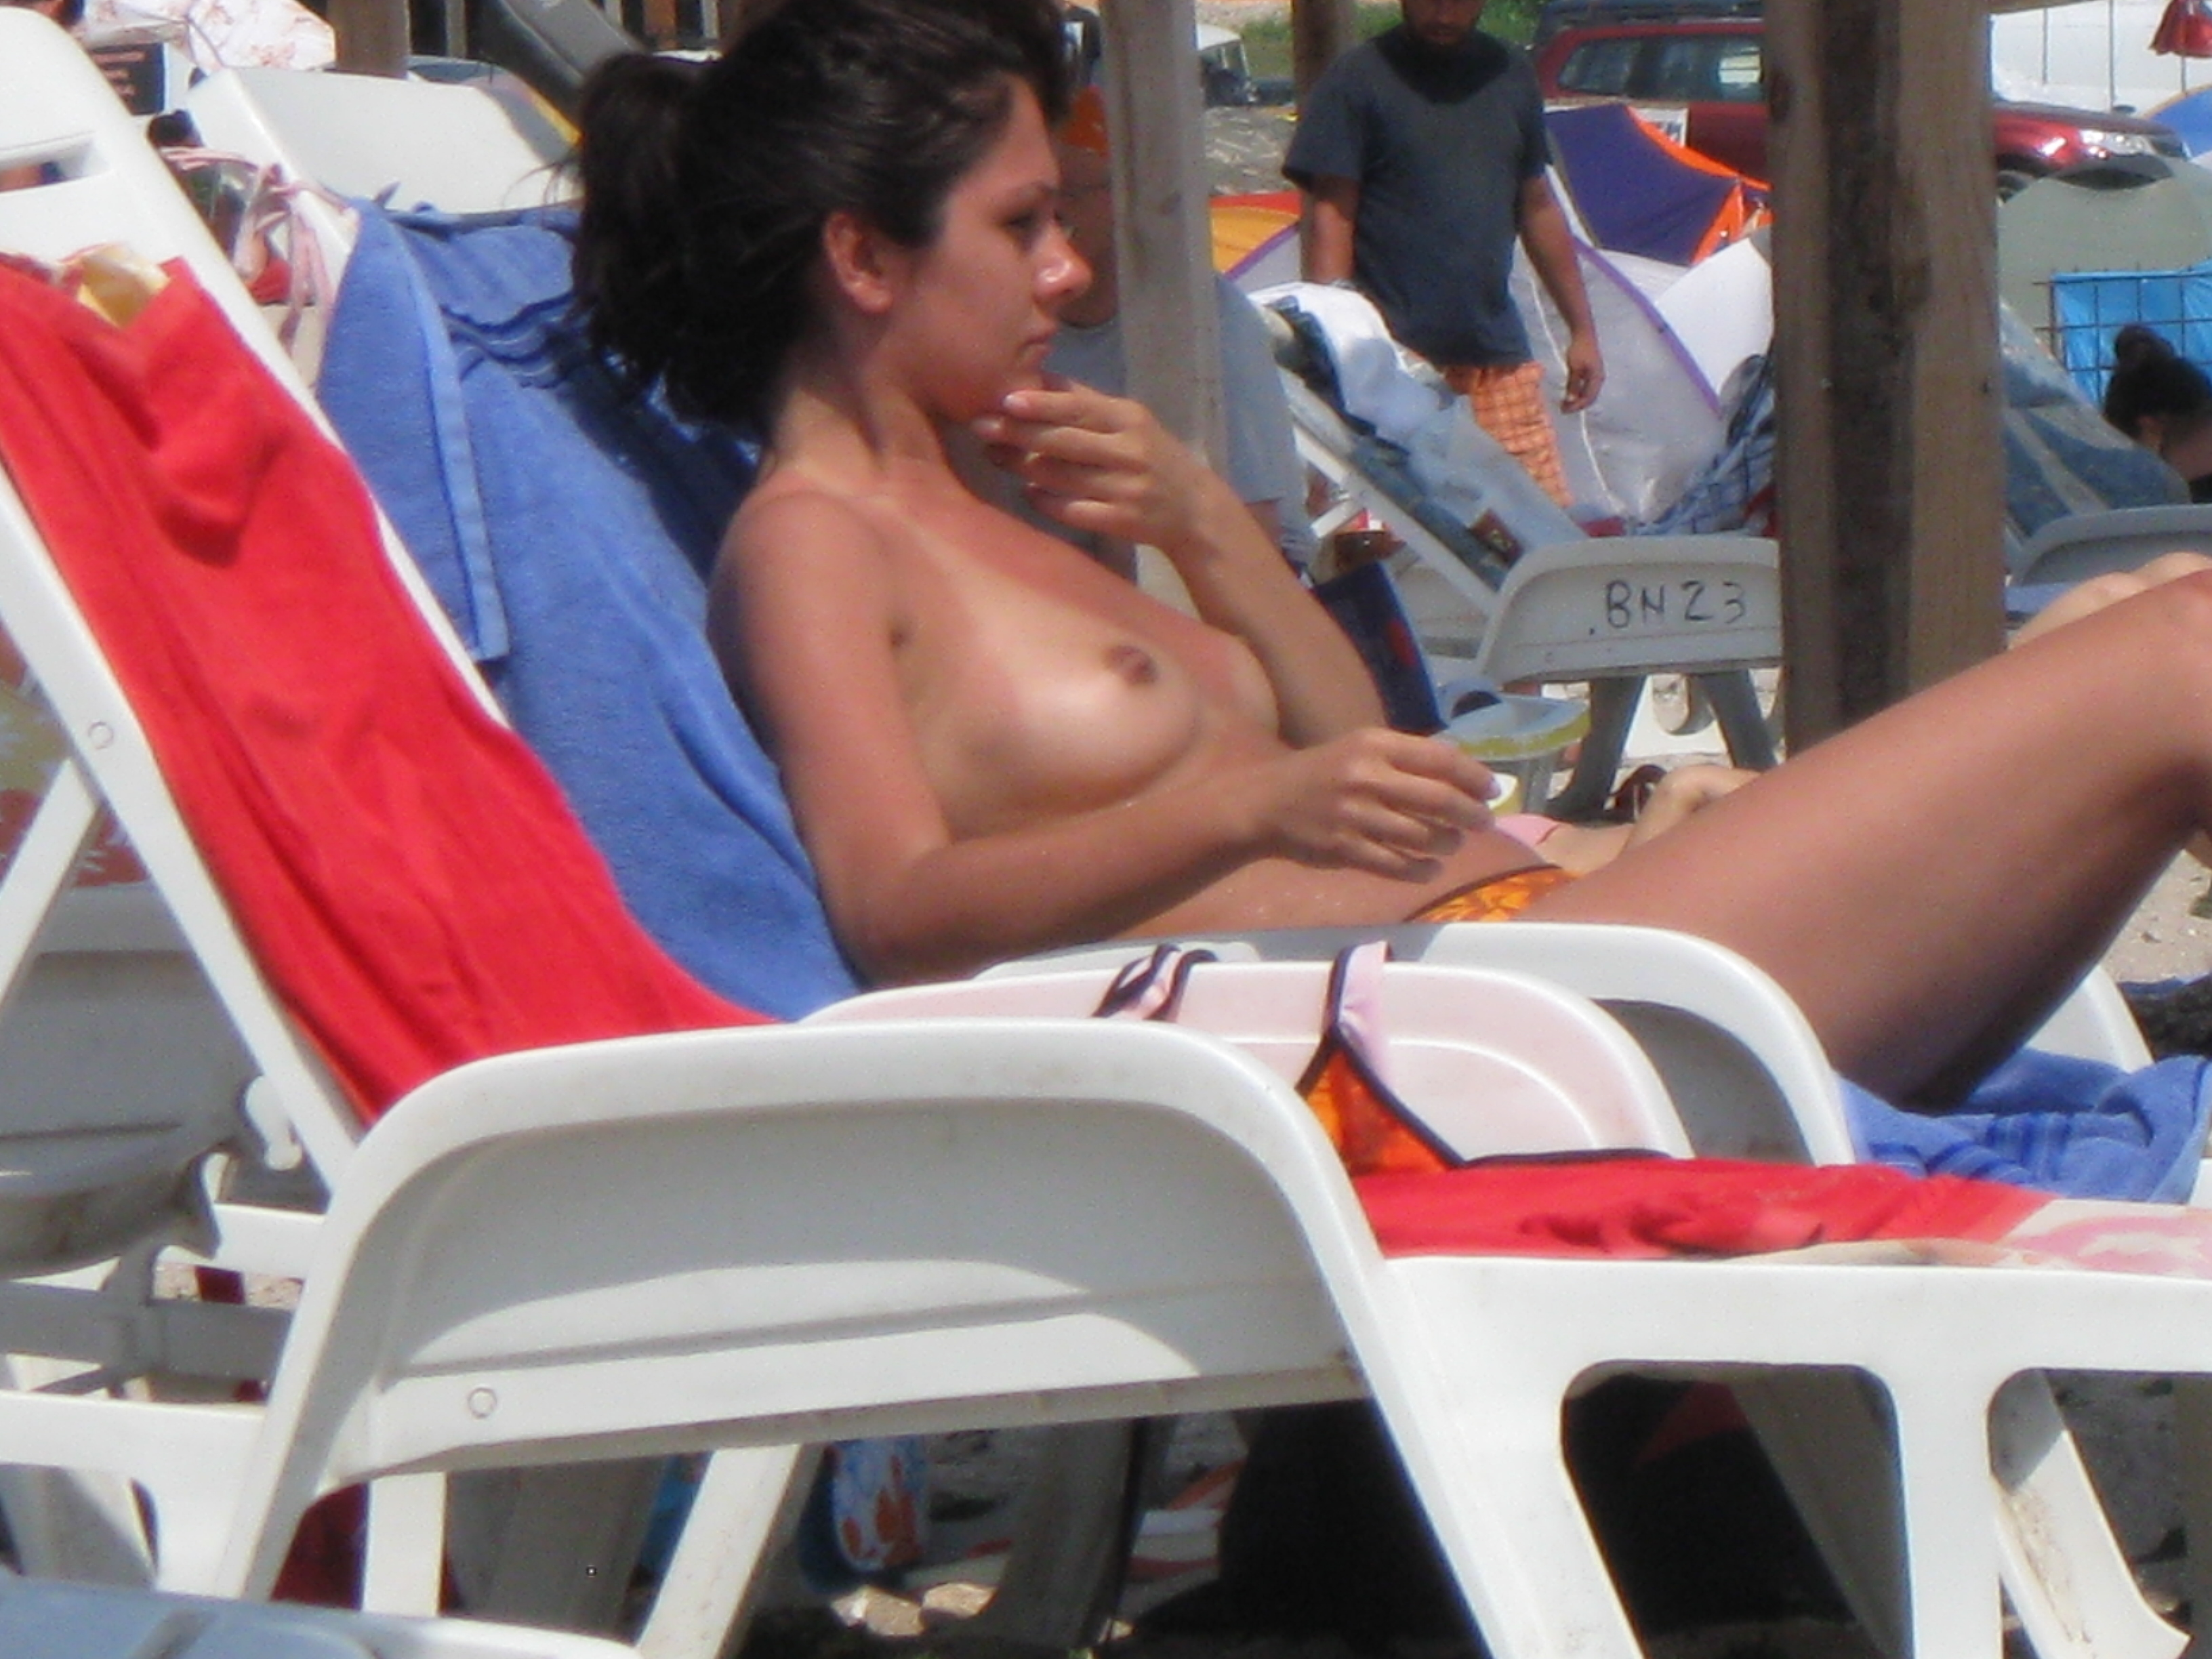 Topless babe wondering if someone is watching her